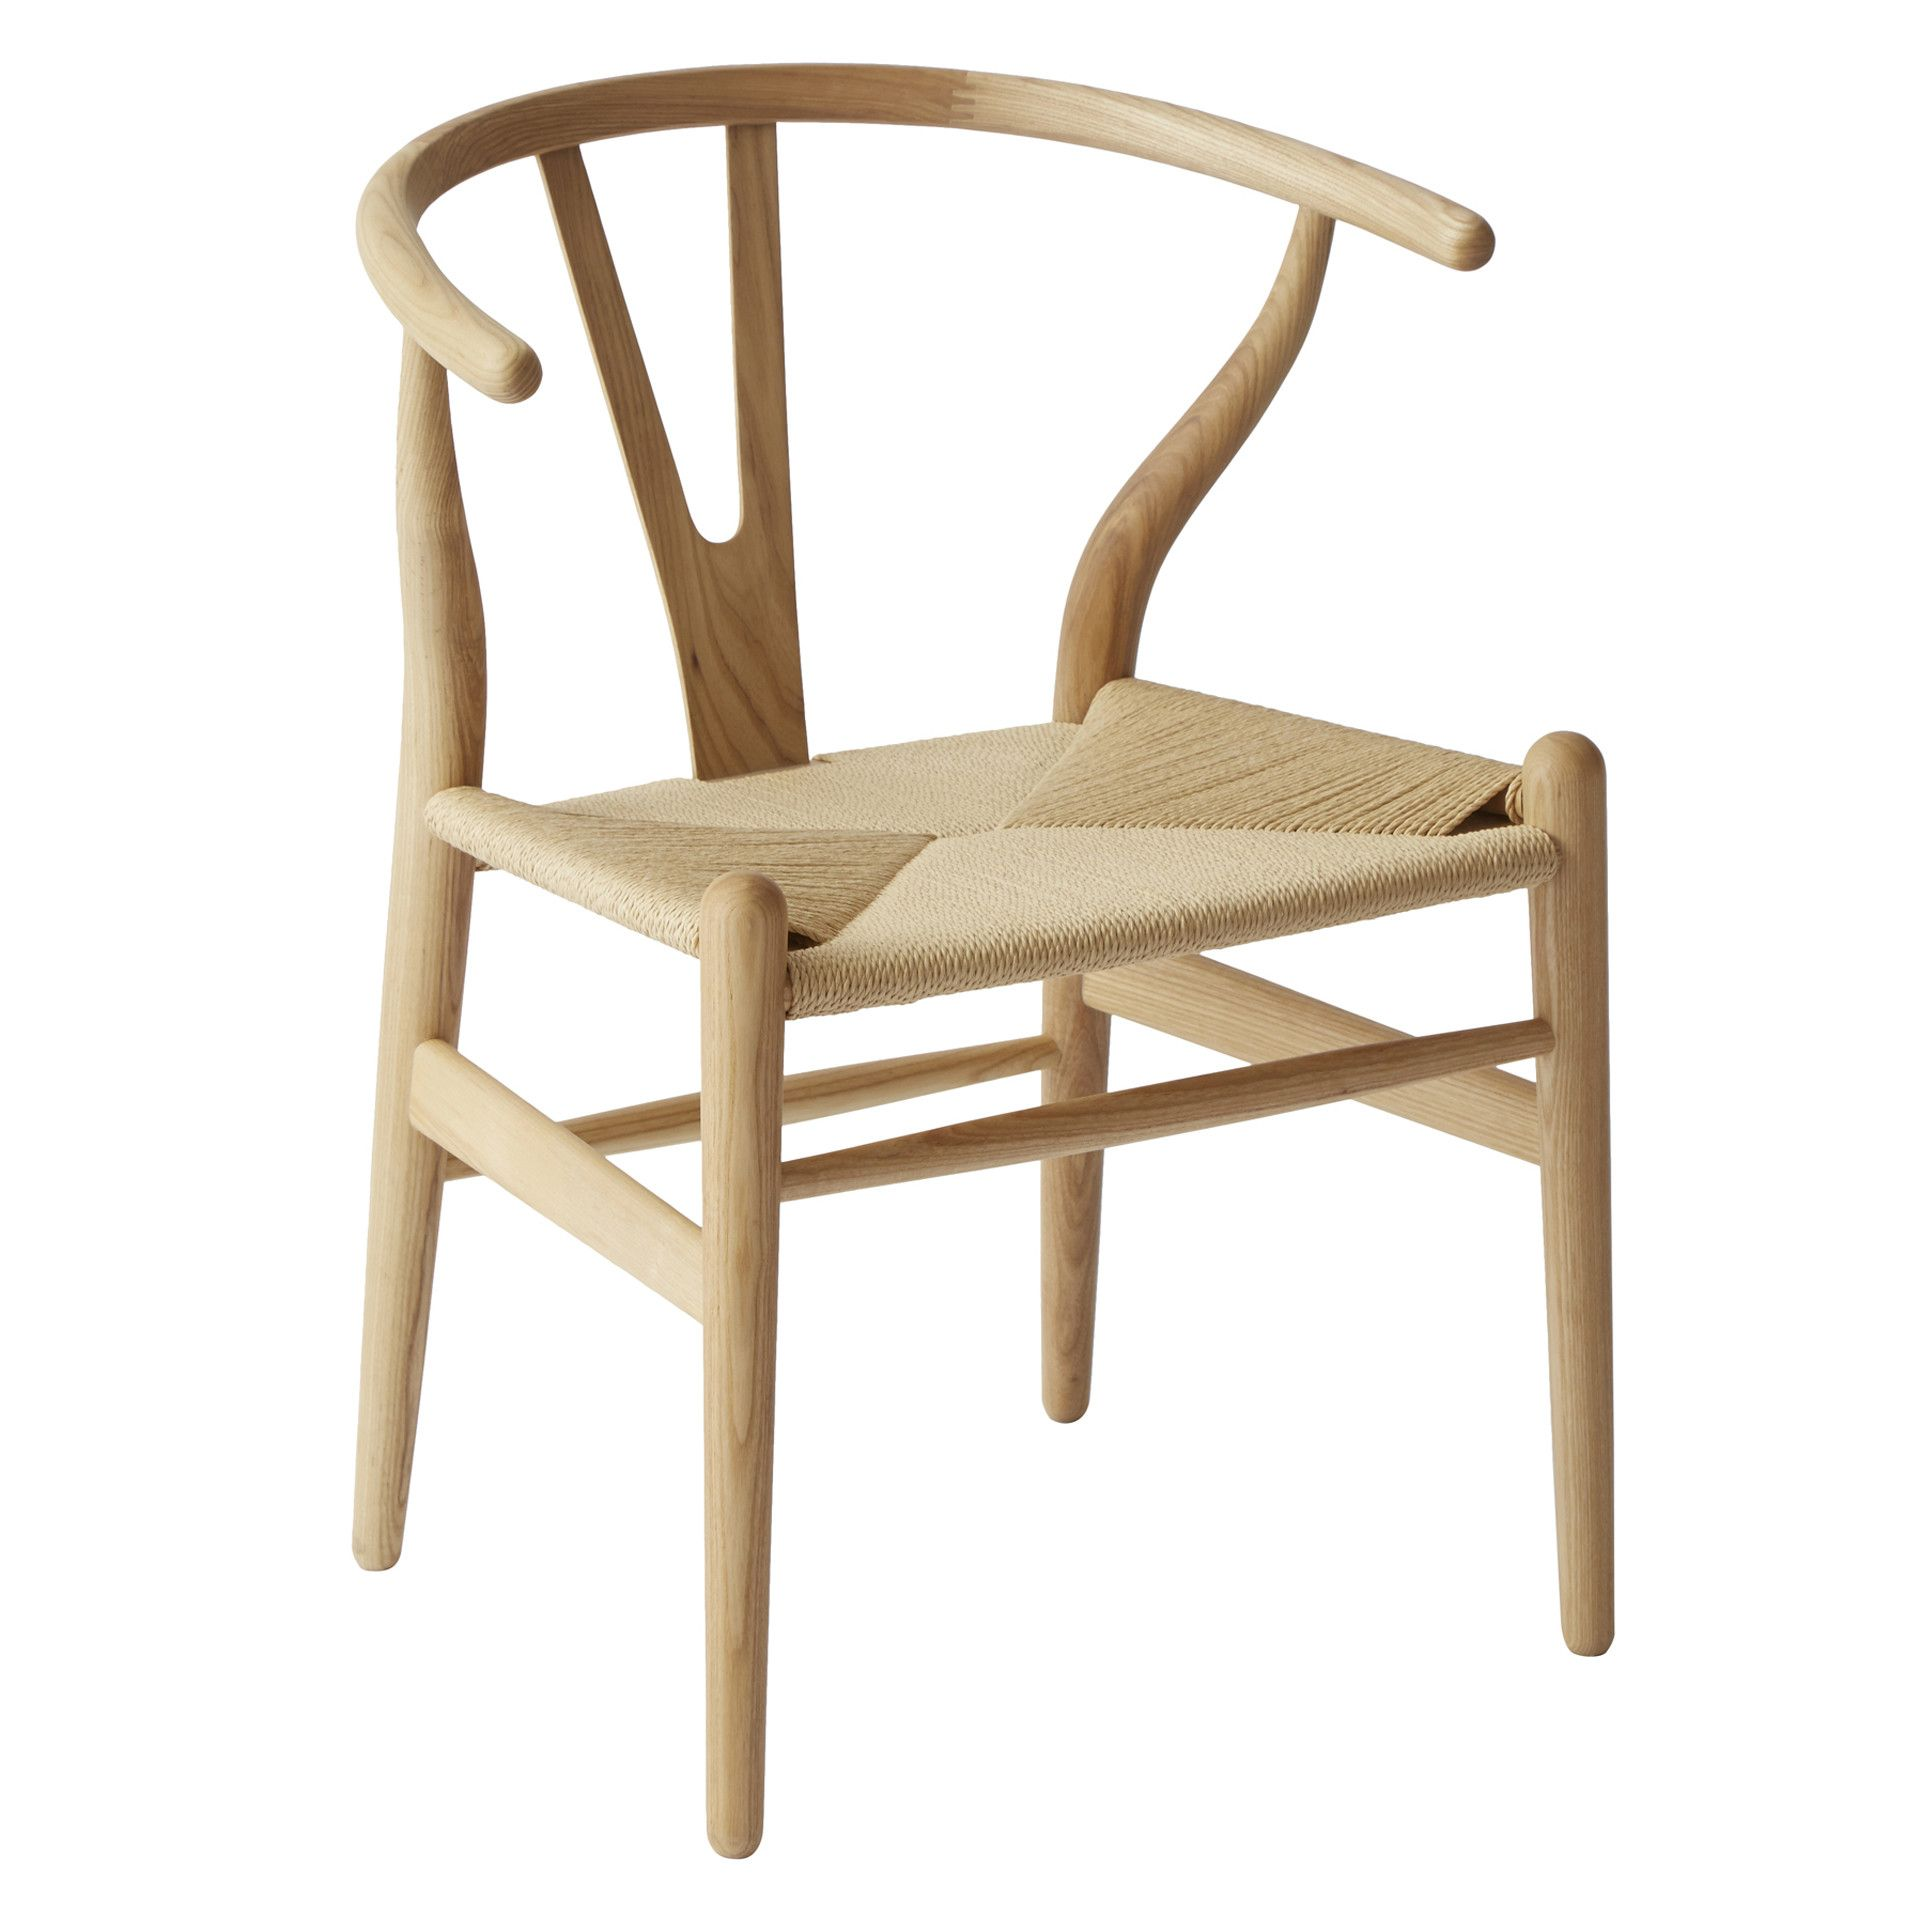 Villa Court Arm Chair | 单品 | Pinterest | Villas, Solid wood and Arms